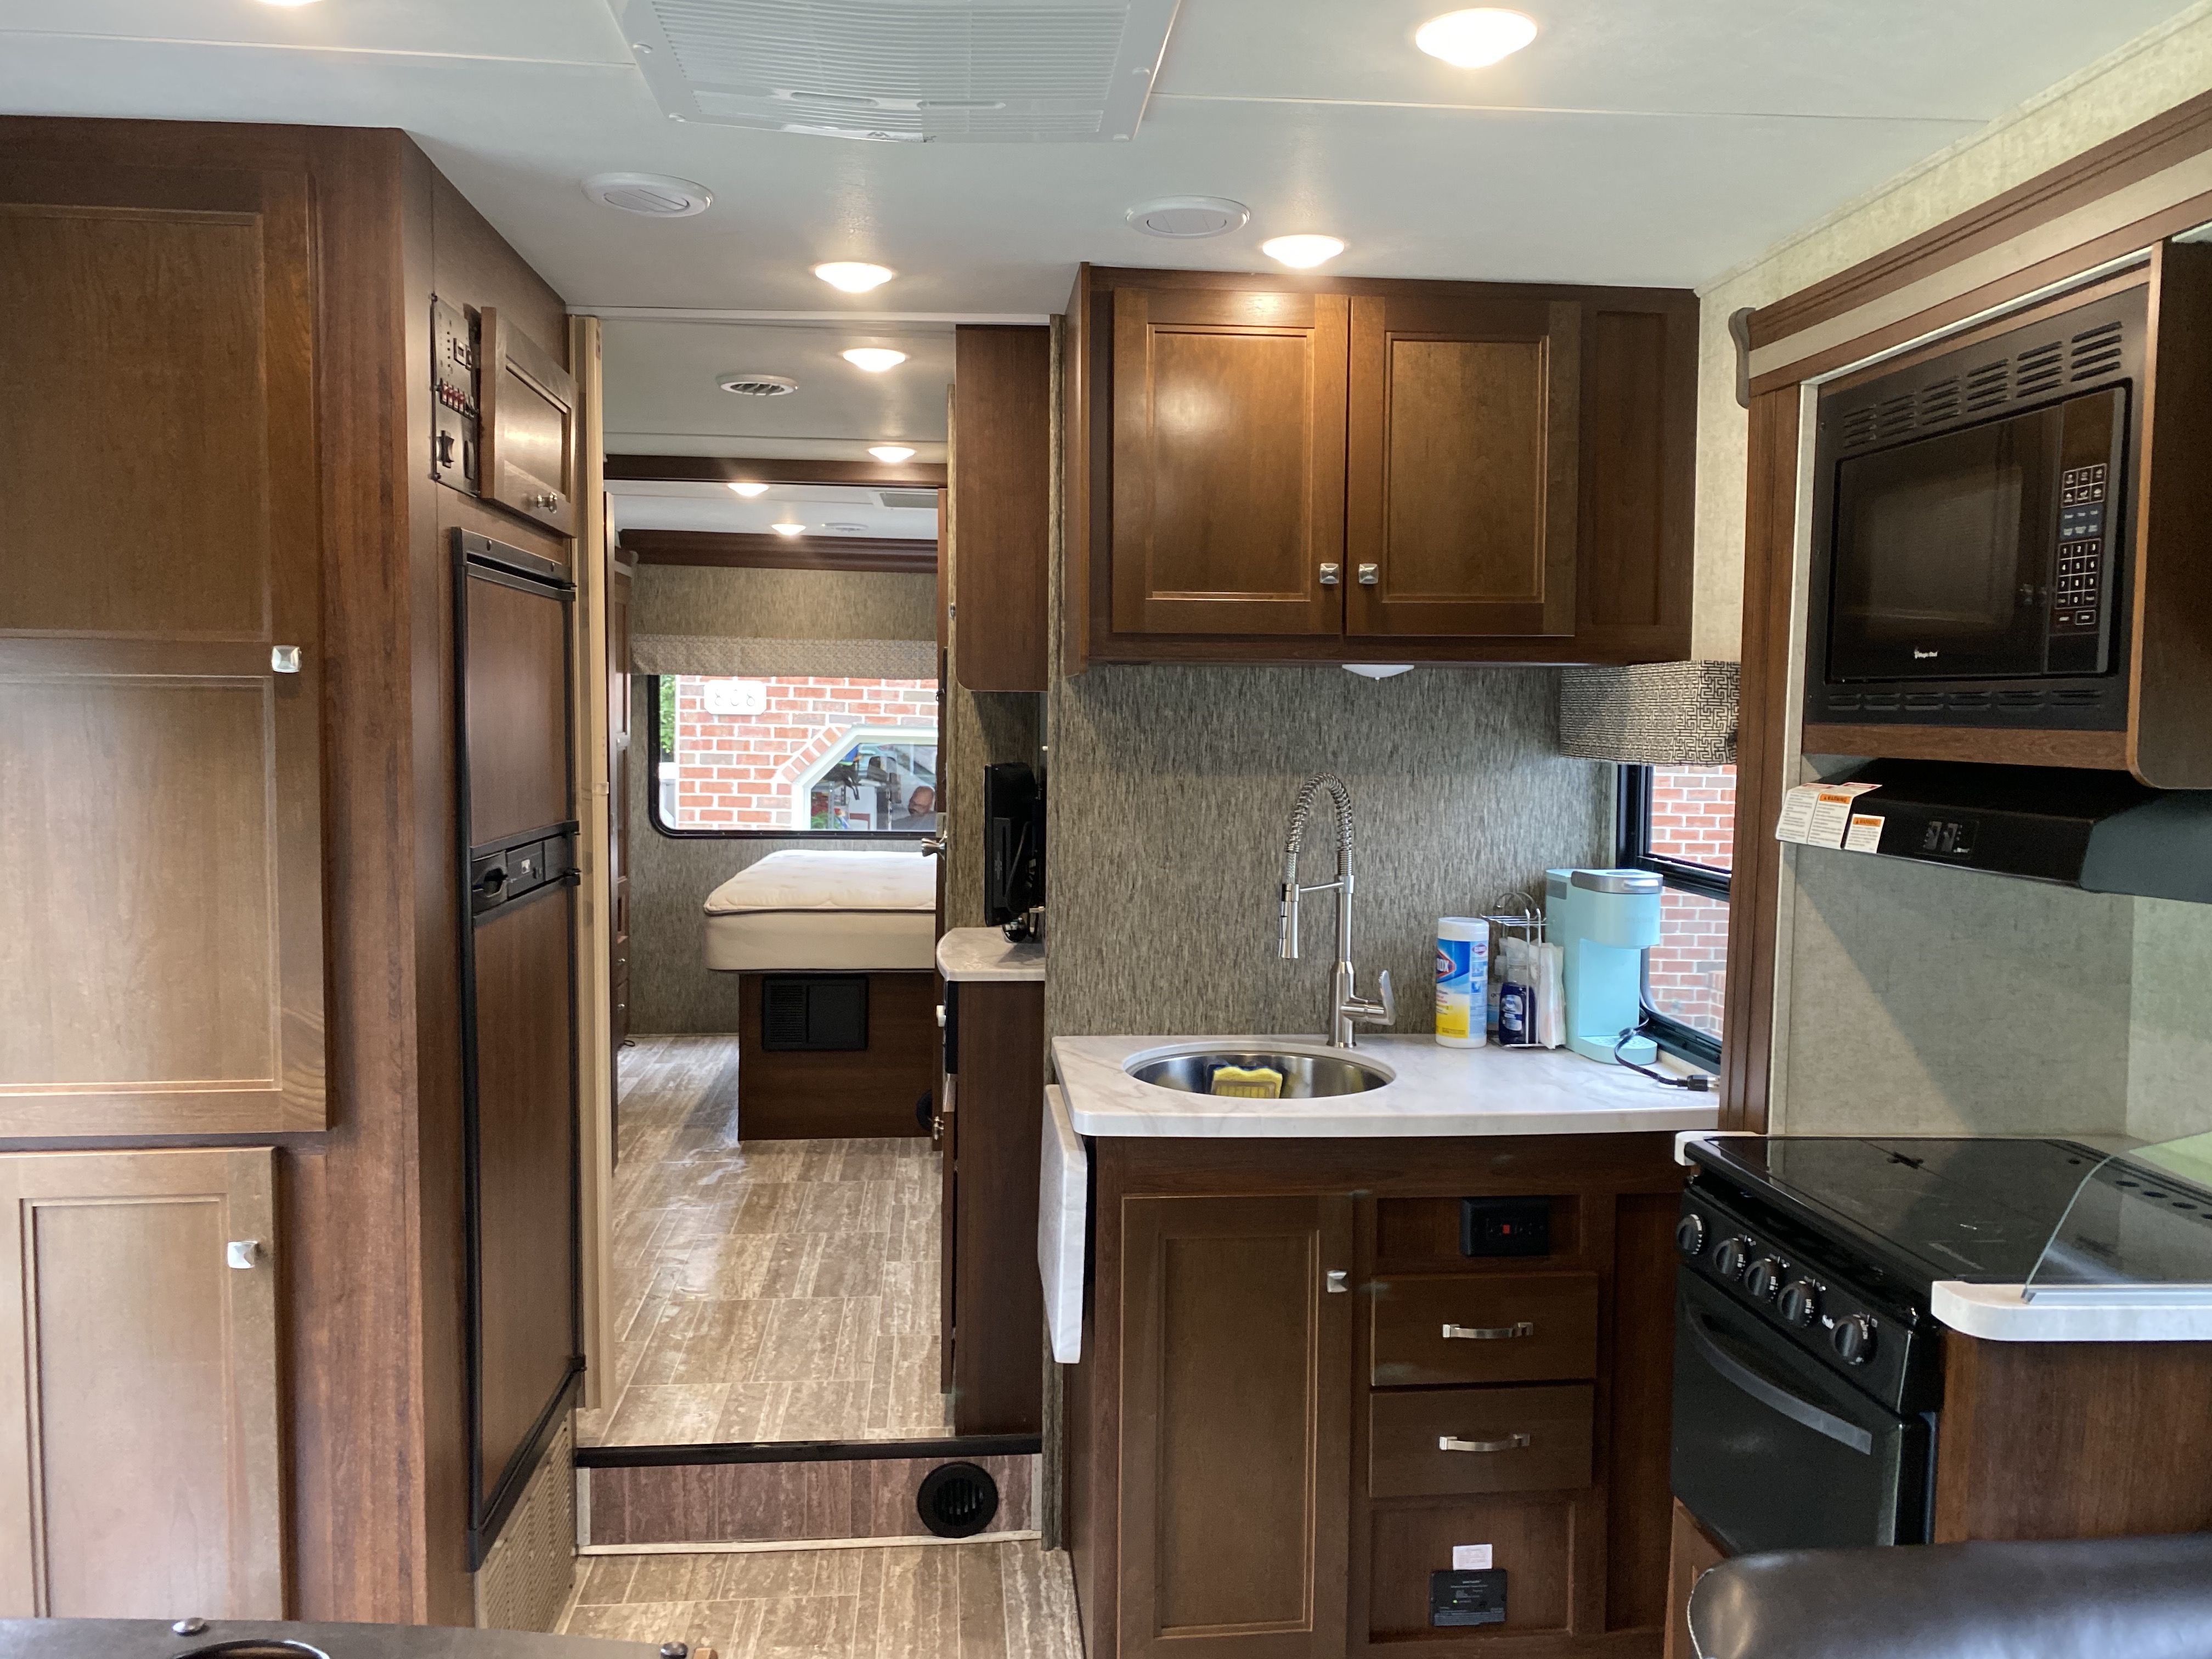 Kitchen. Counter pulls out for more space. Silverware, dishes, pots and pans provided.. Forest River Sunseeker 2018